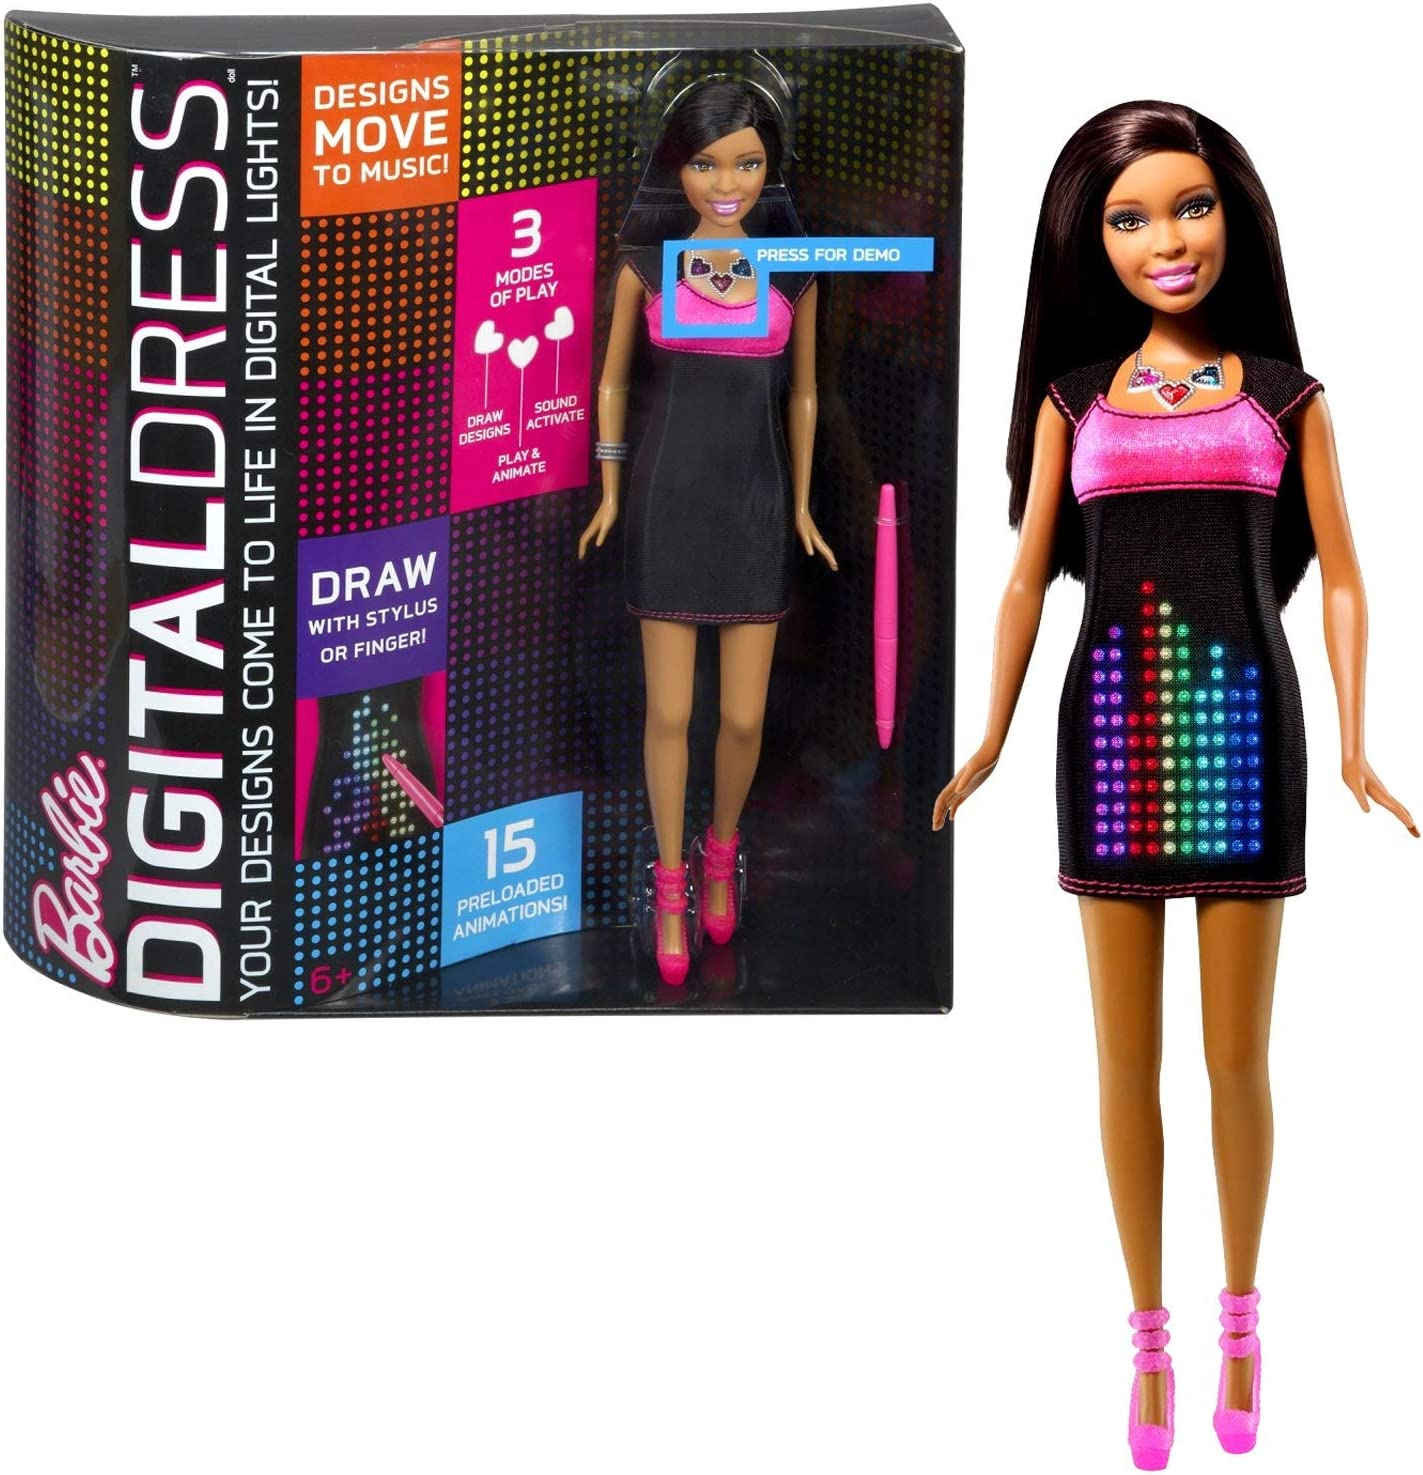 Amazon Com Mattel Year 2013 Barbie Digital Dress Series 12 Inch Doll Set African American Nikki Y8179 With Led Dress That Lights Up And Reacts To Sound Plus 15 Preloaded Animations Stylus